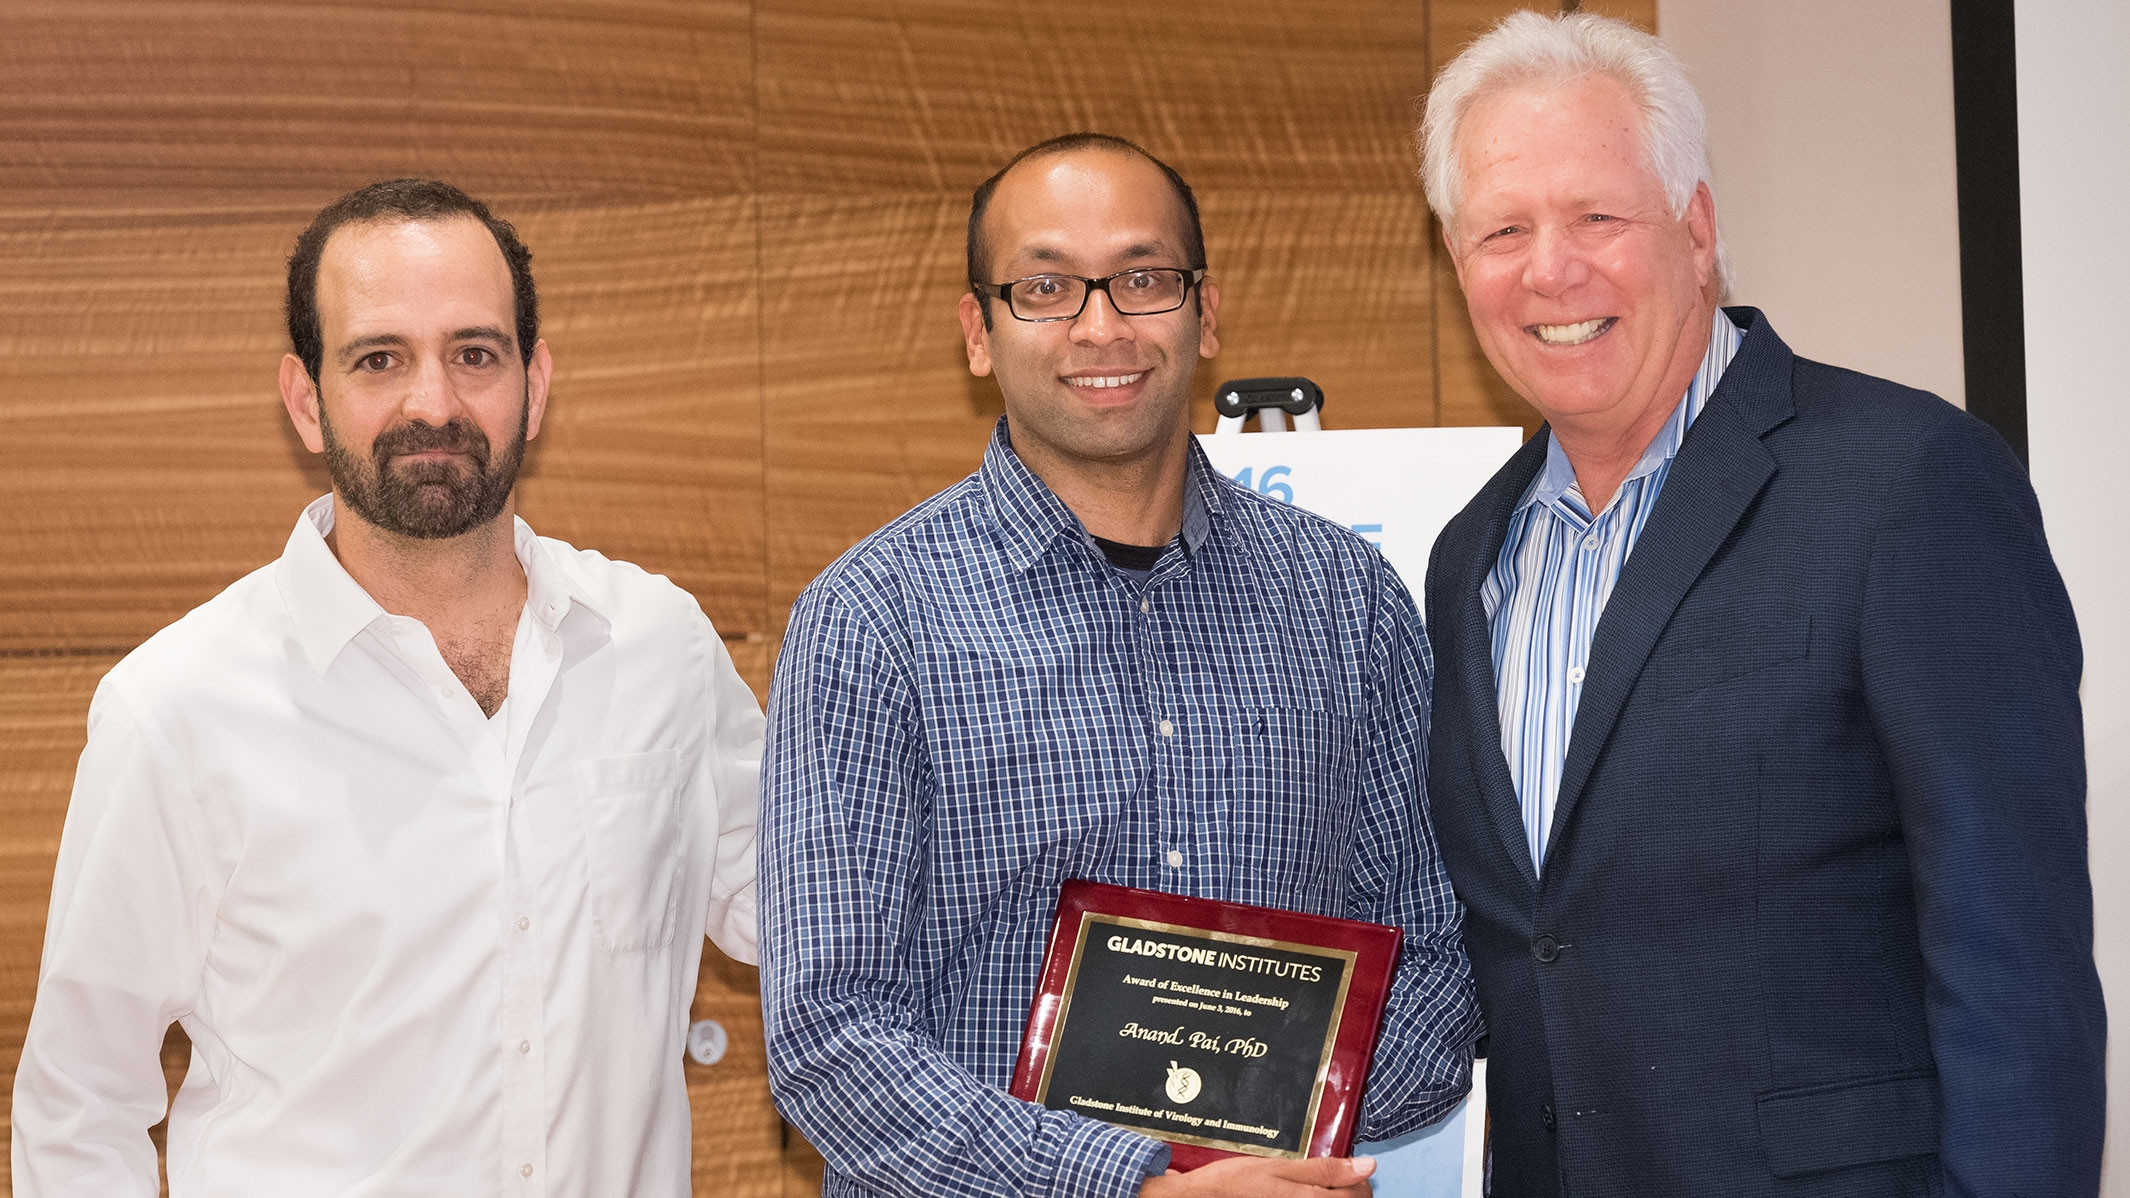 Anand's Award of Scientific Excellence